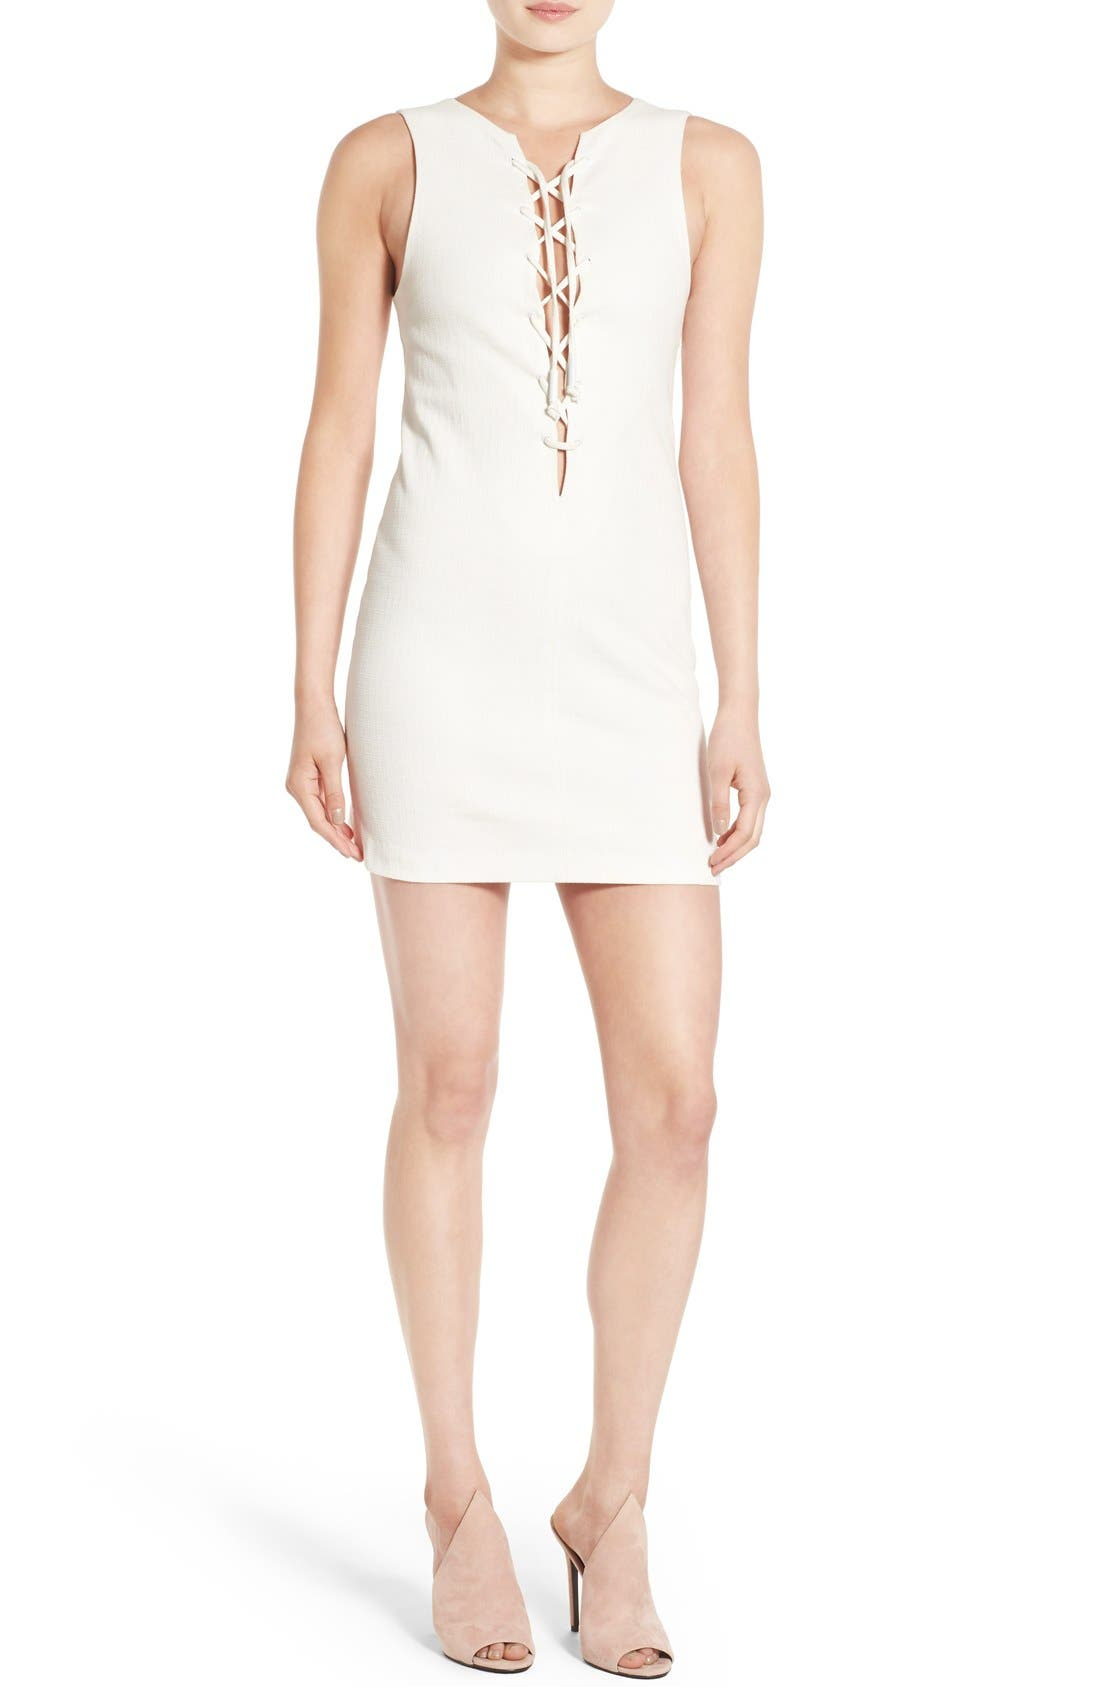 Alternate Image 1 Selected - KENDALL + KYLIE Lace-Up Tunic Dress